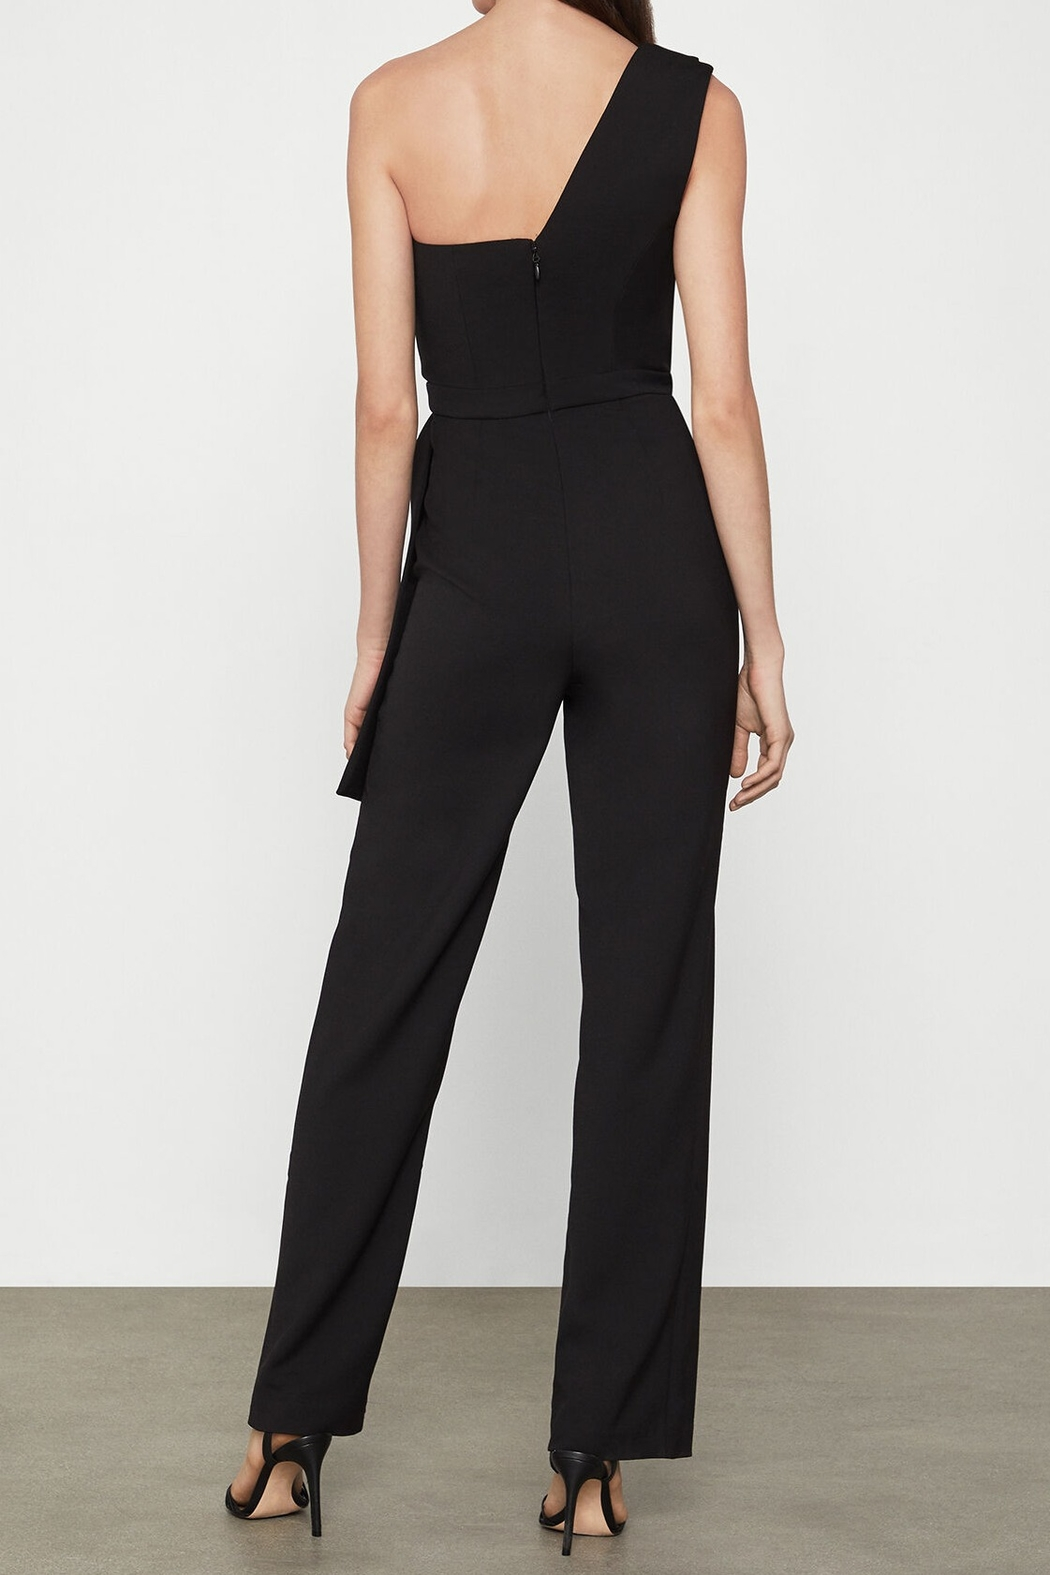 BCBG MAXAZRIA Jumpsuit With Faux Leather Trim - Front Full Image